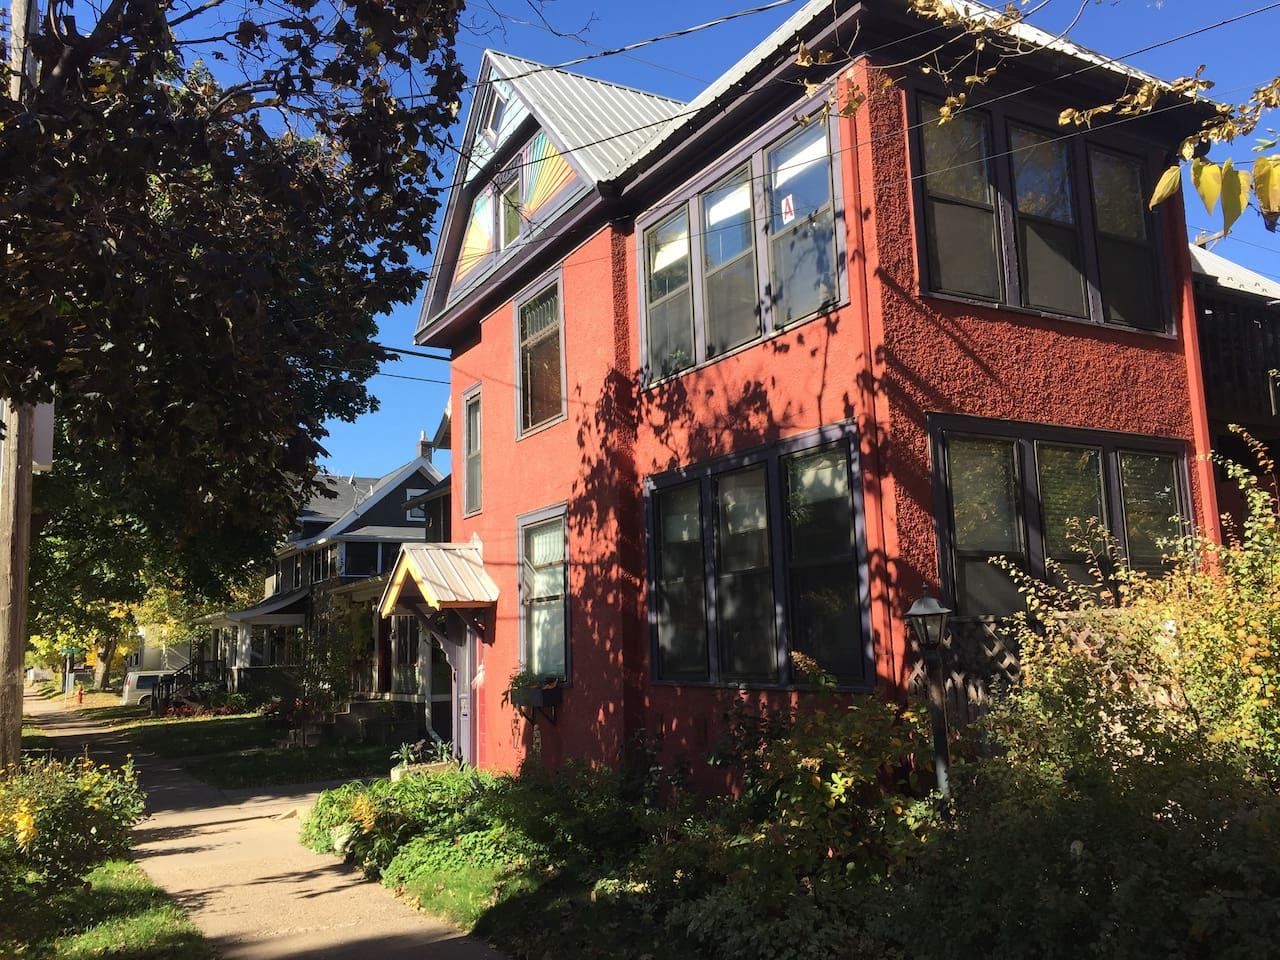 Welcome to your stay in our private first floor, 2-bedroom unit at The Red House in Uptown Minneapolis. Parking behind the duplex for one vehicle. Near uptown restaurants, galleries and theaters.